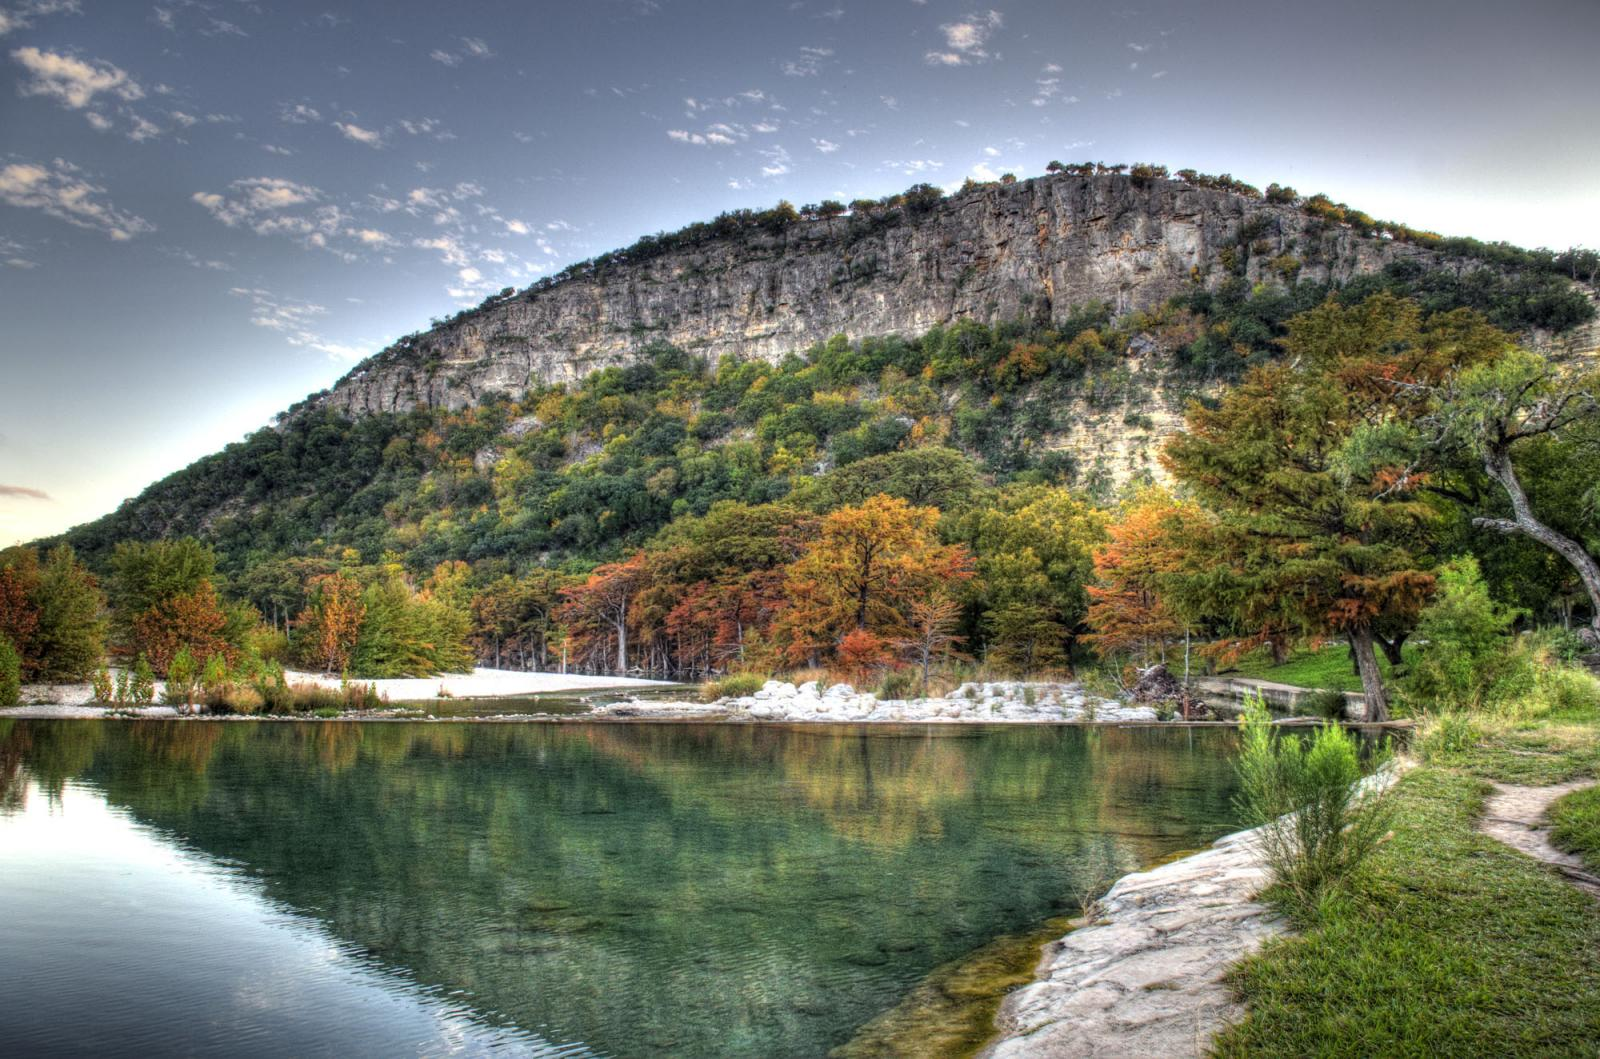 Hills in one of Texas' state parks